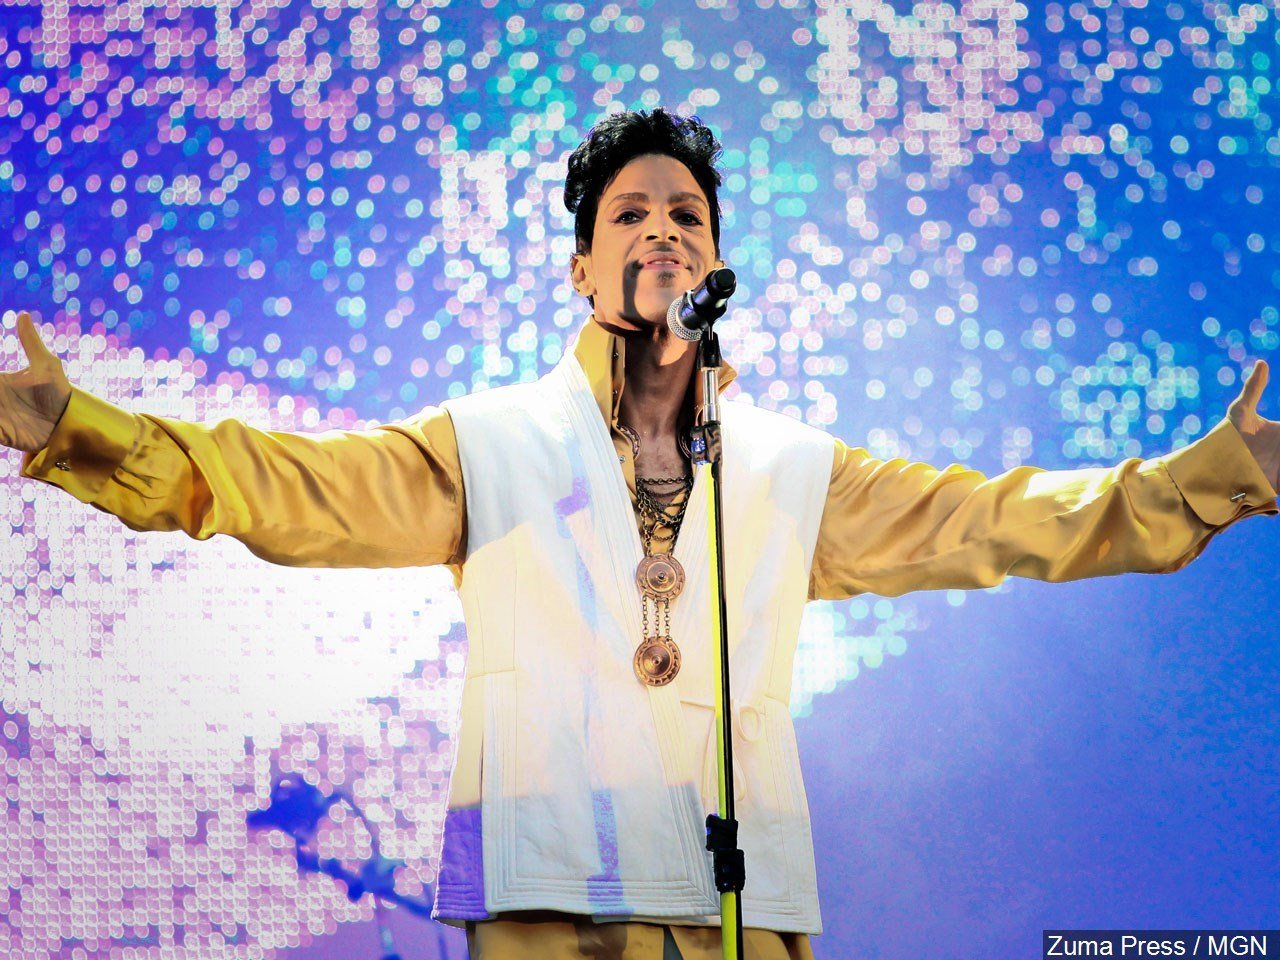 Search warrants provide few clues into source of Prince's fatal overdose